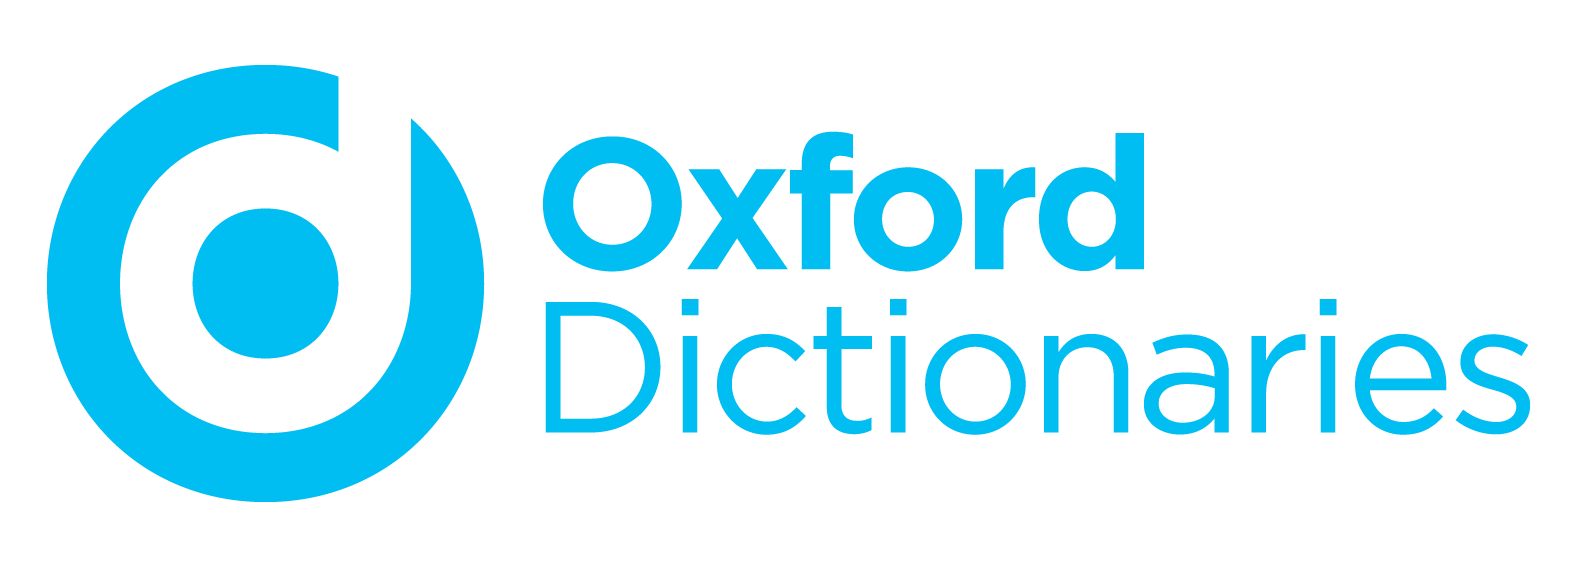 Clipart definition oxford dictionary. Logos english examples alternative